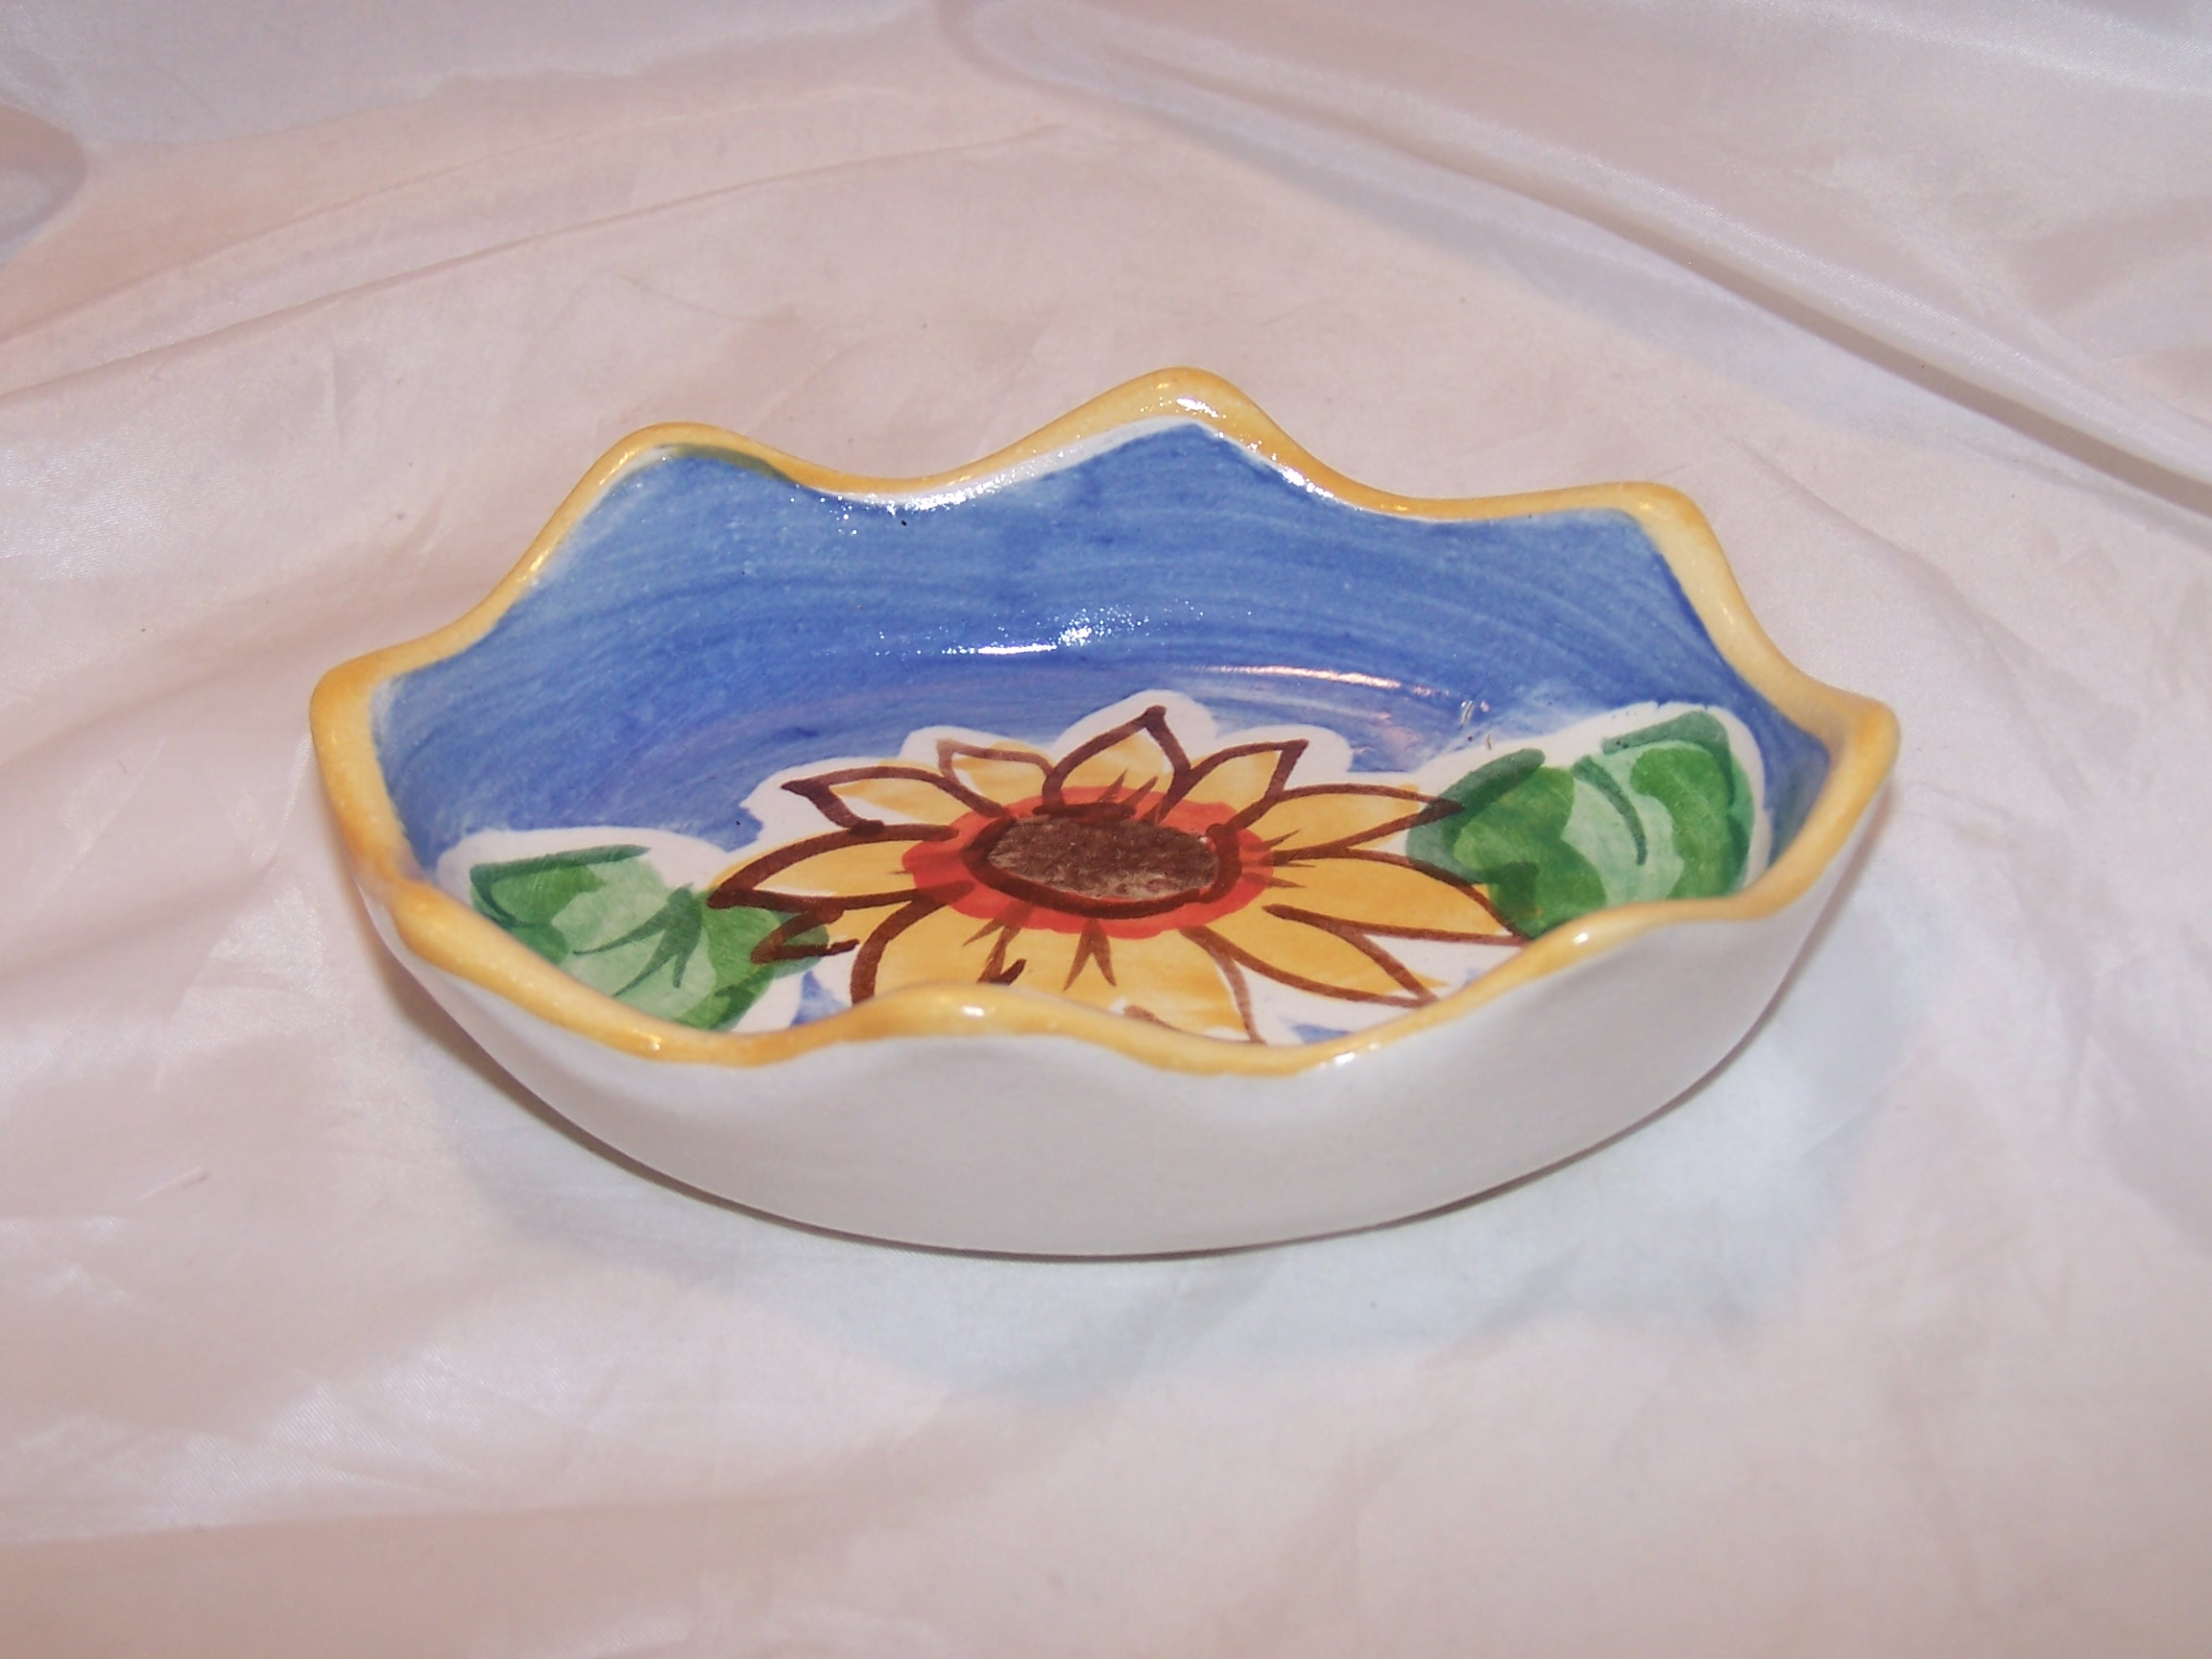 Image 1 of Fioriware Soap Dish Sunflower Handcrafted Ohio